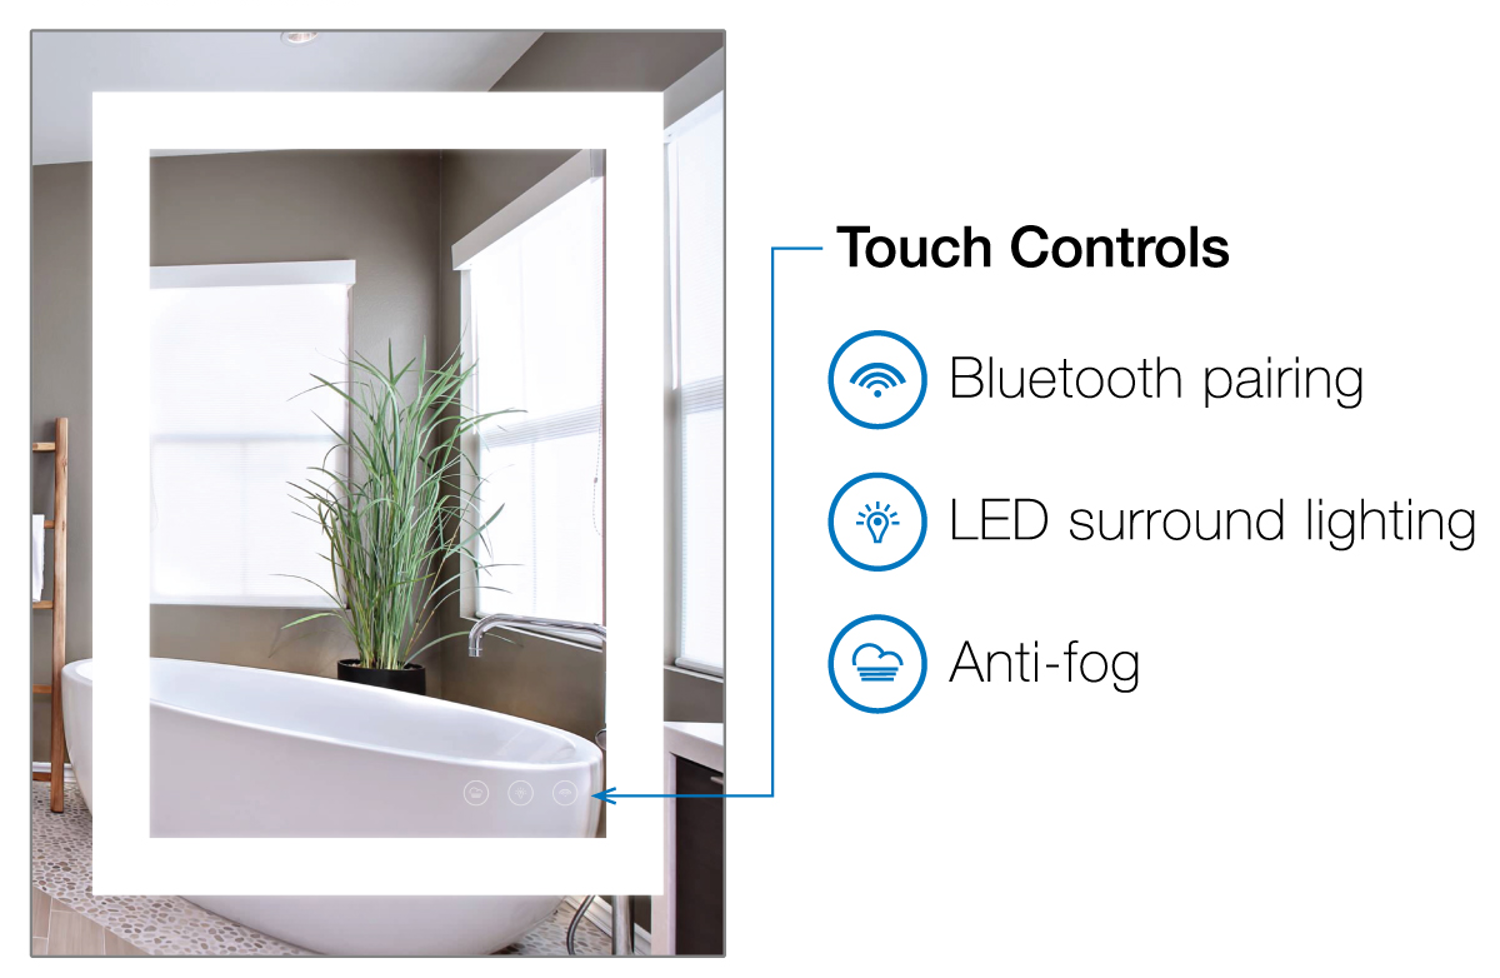 Bluetooth Bathroom Mirror Youtube smart bathroom mirror sings and answers your phone calls; vent